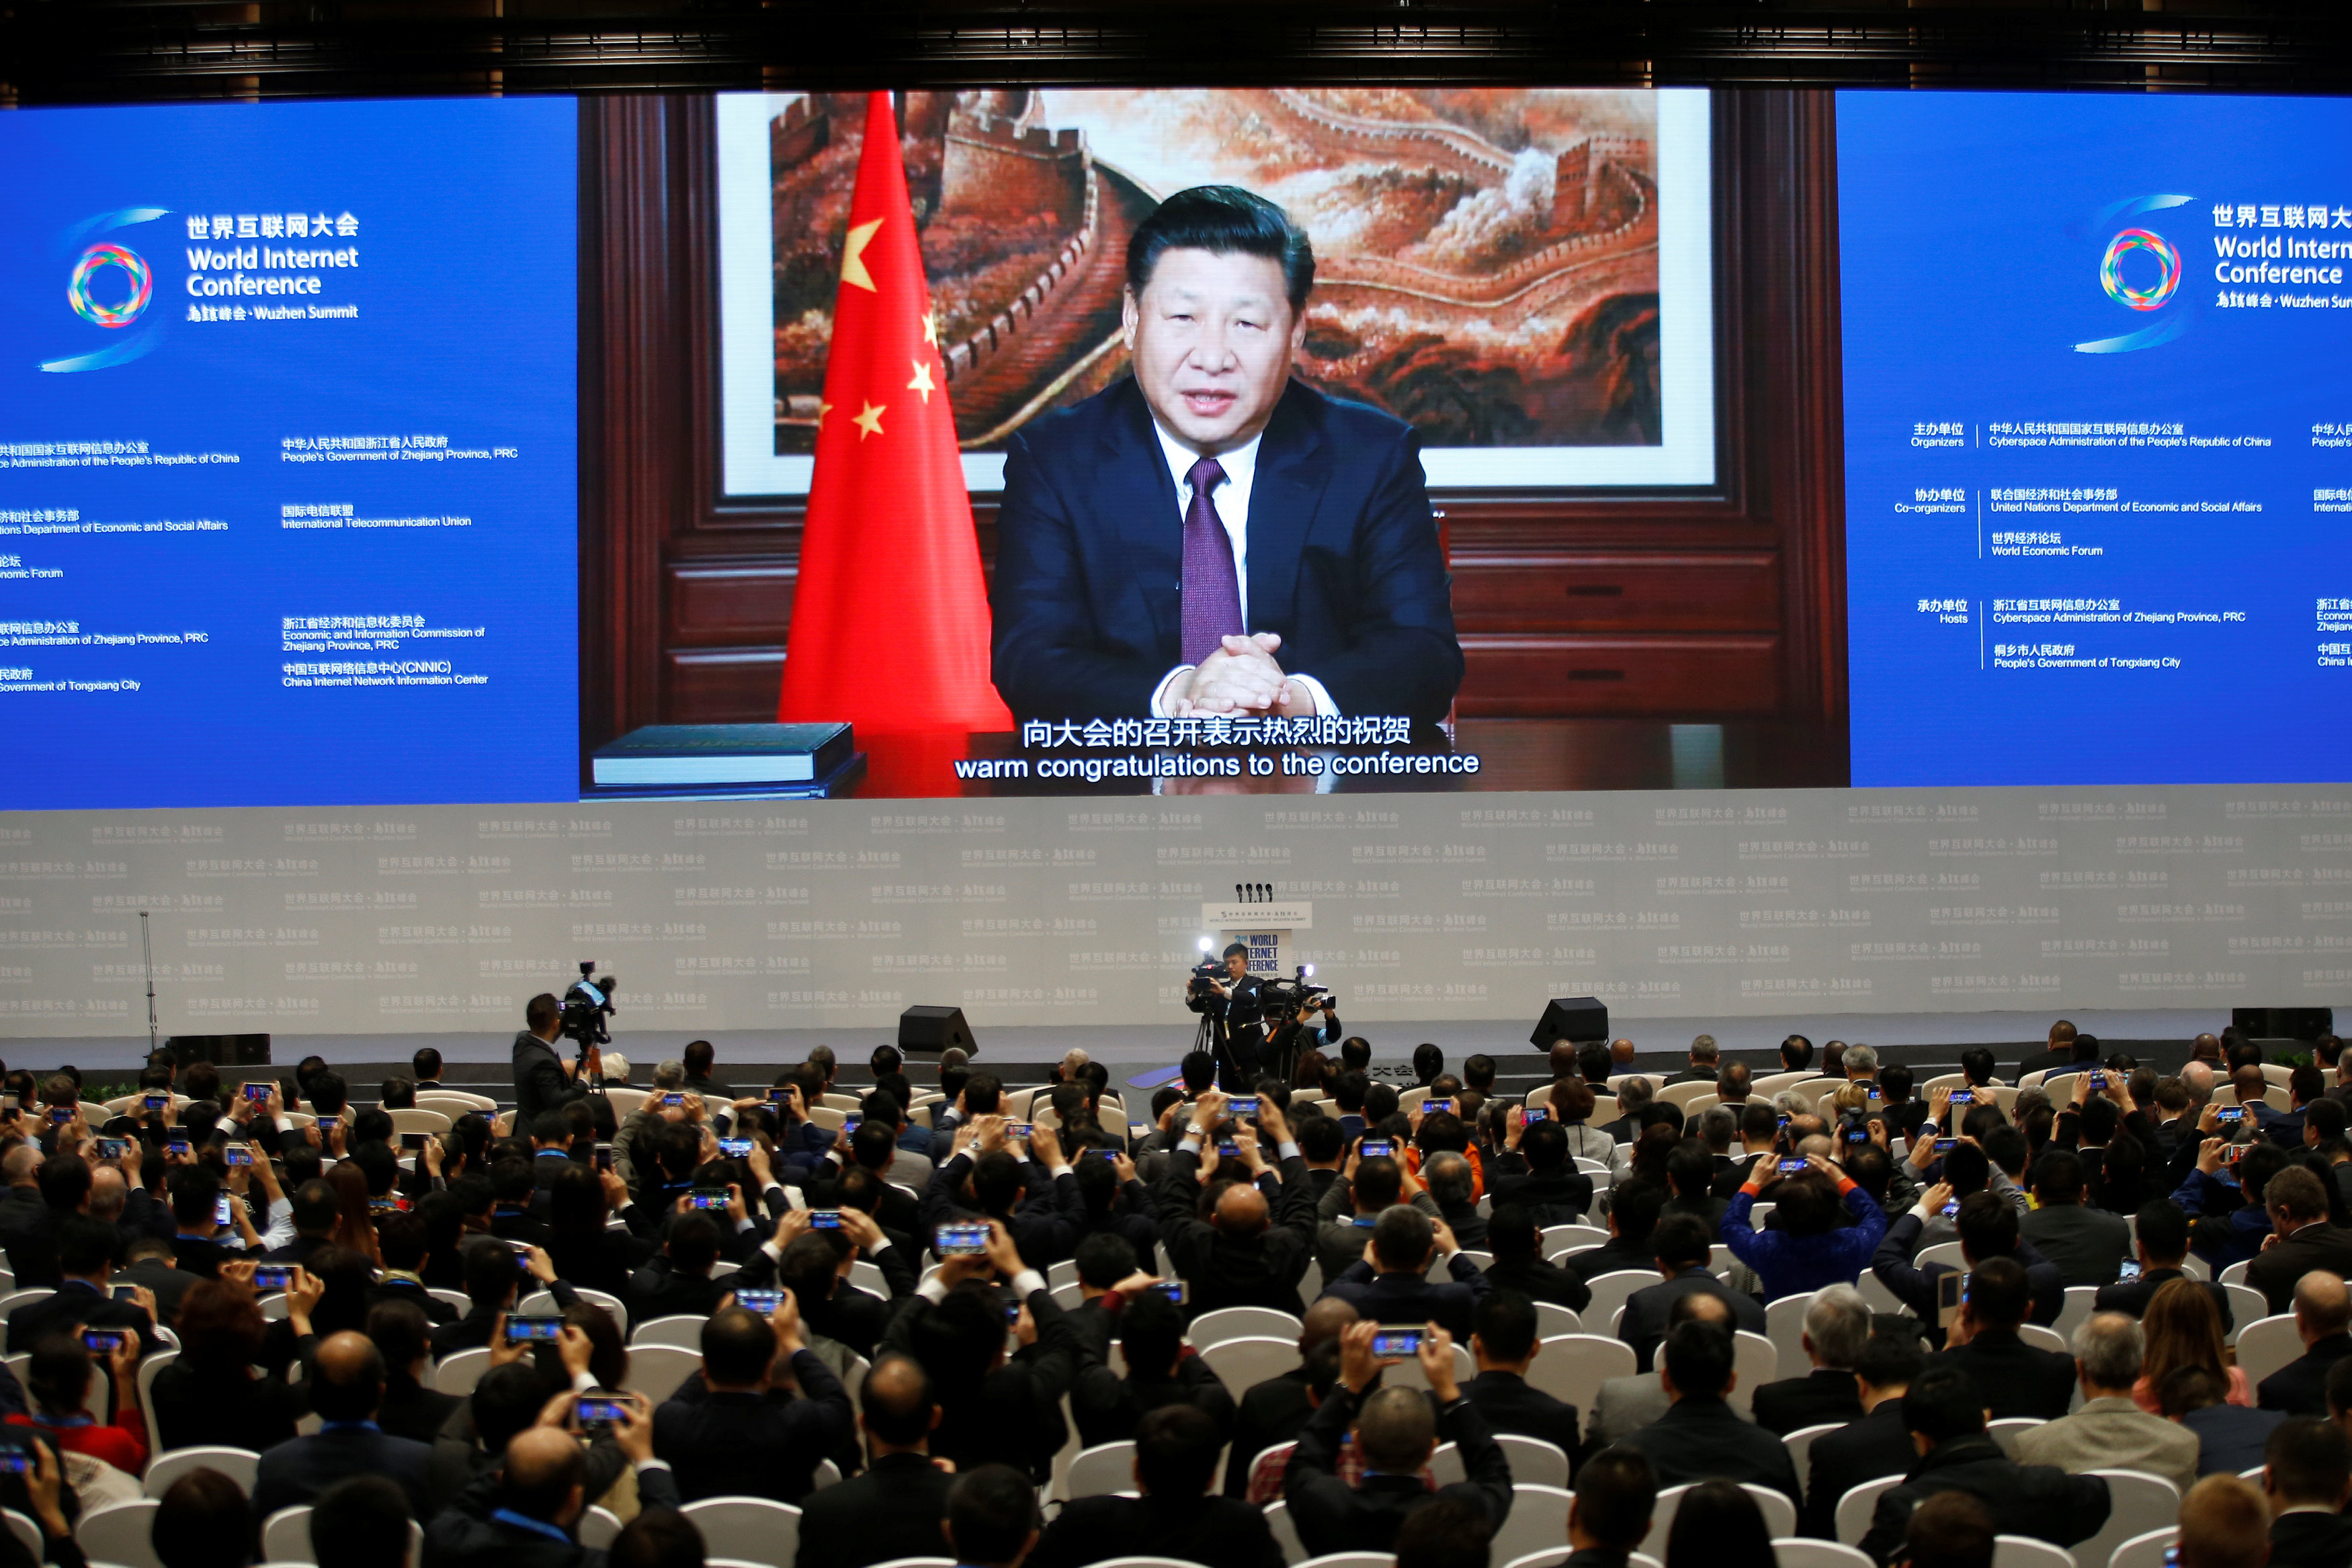 Attendees listen to a speech by China's President Xi Jinping shown on a screen during the opening ceremony of the third annual World Internet Conference in Wuzhen town of Jiaxing, Zhejiang province, China